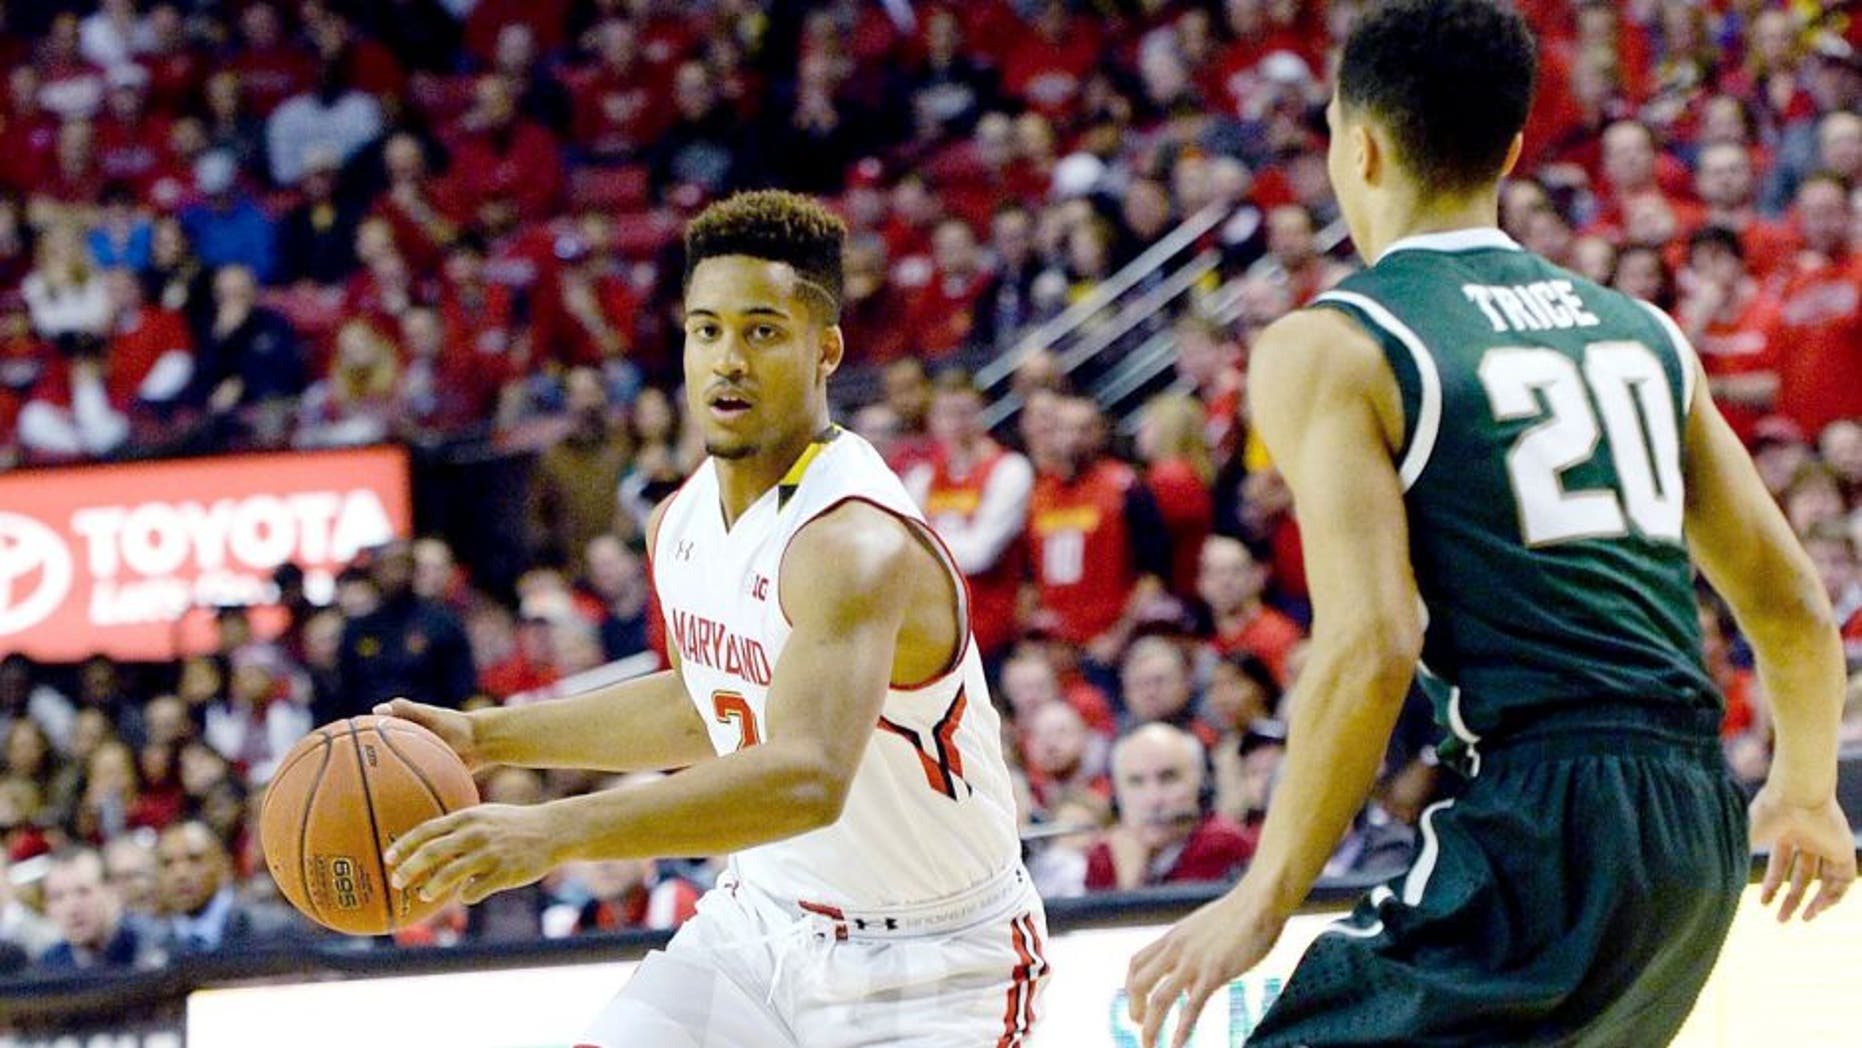 Jan 17, 2015; College Park, MD, USA; Maryland Terrapins guard Melo Trimble (2) dribbles as Michigan State Spartans guard Travis Trice (20) defends during the first half at Xfinity Center. Mandatory Credit: Tommy Gilligan-USA TODAY Sports